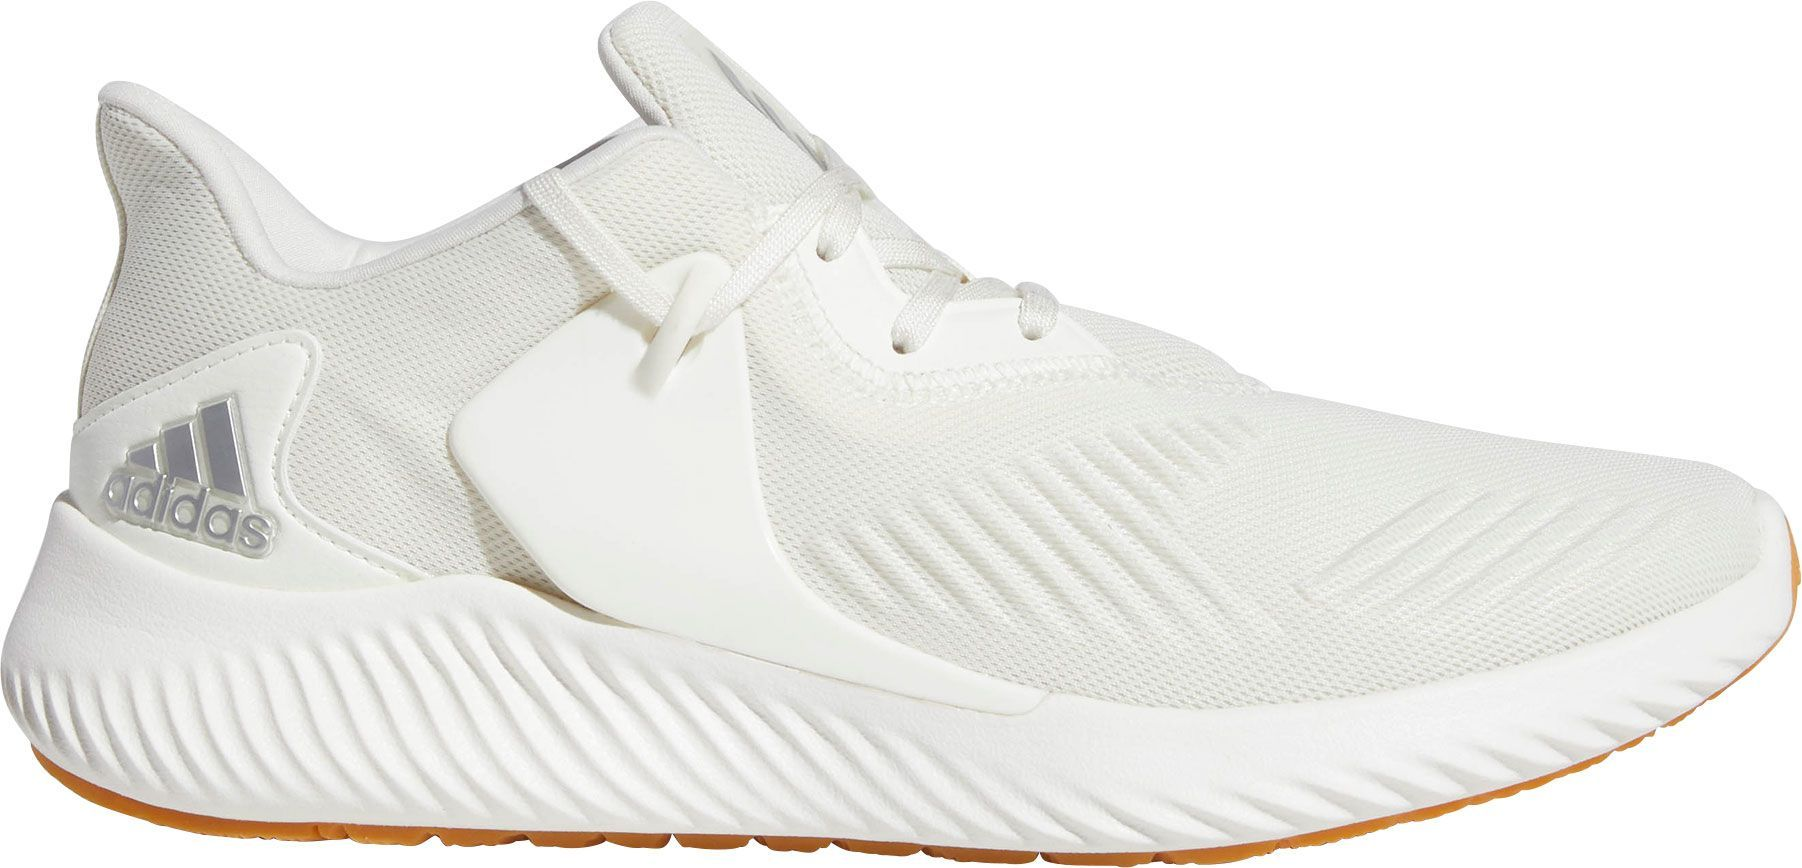 9a70f207a9d73 adidas Men s alphabounce RC 2 Running Shoes in 2019